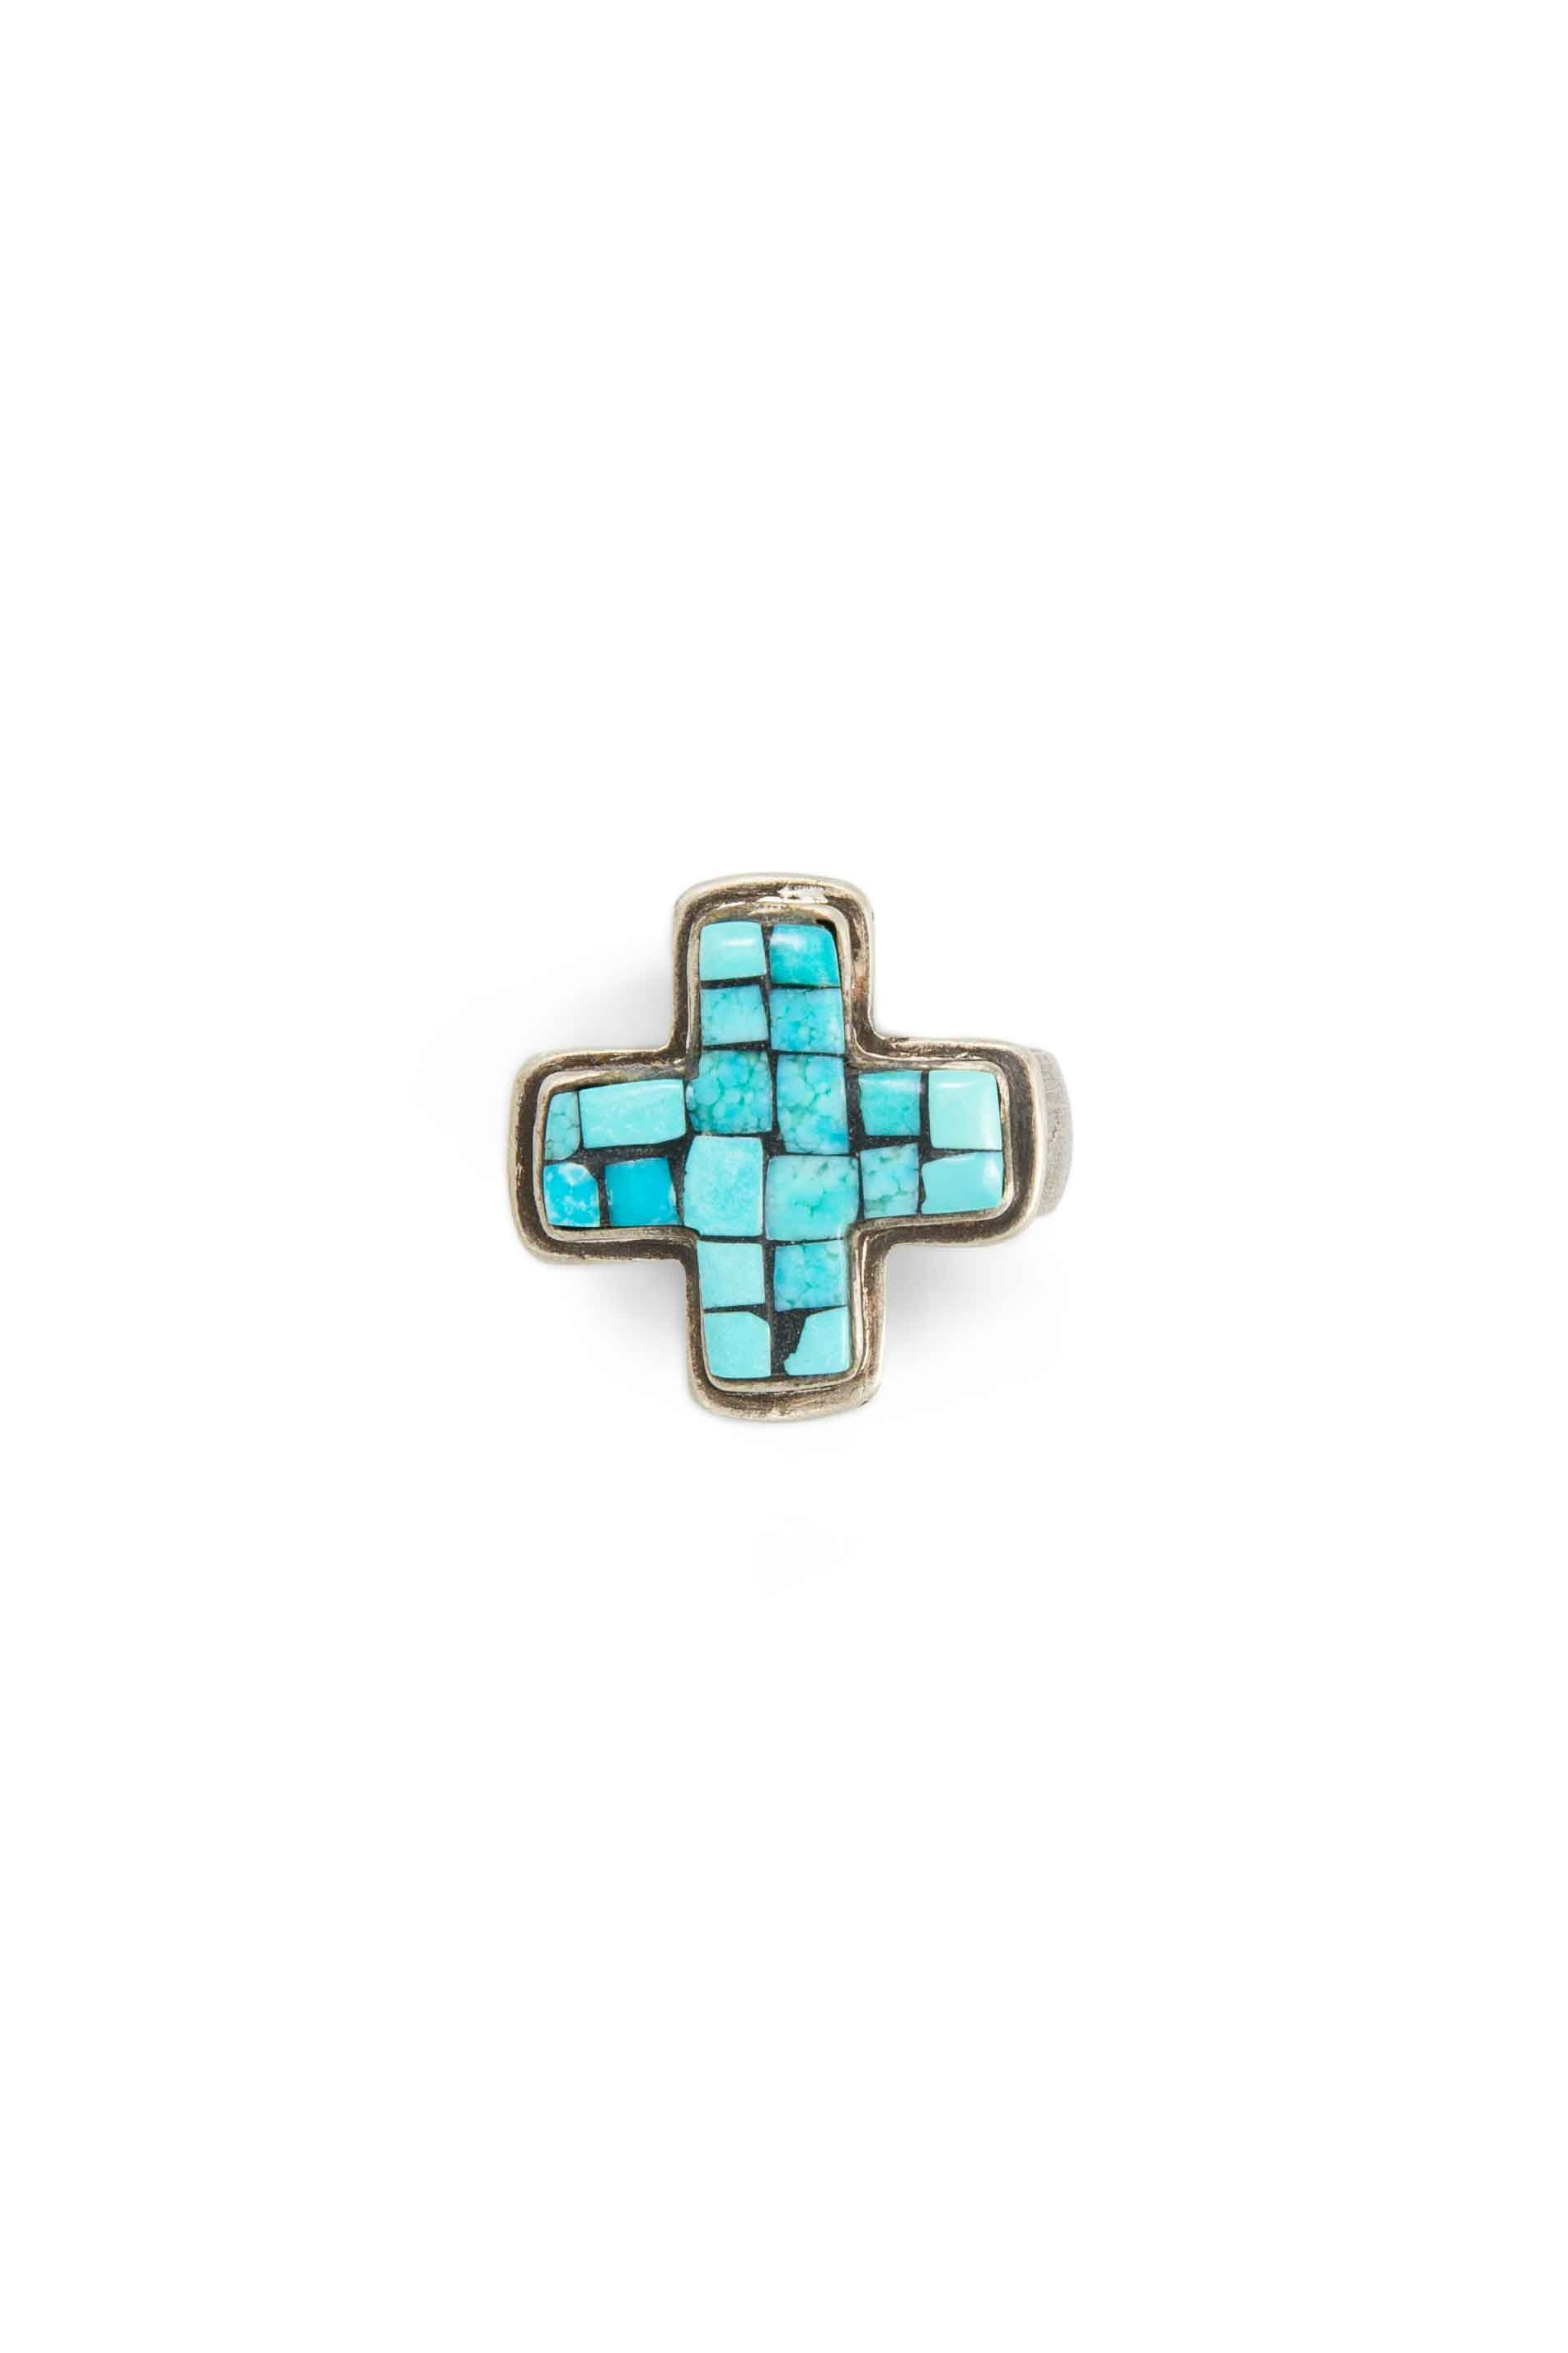 Ring, Conversational, Matrix, Turquoise, Crossroads, 511